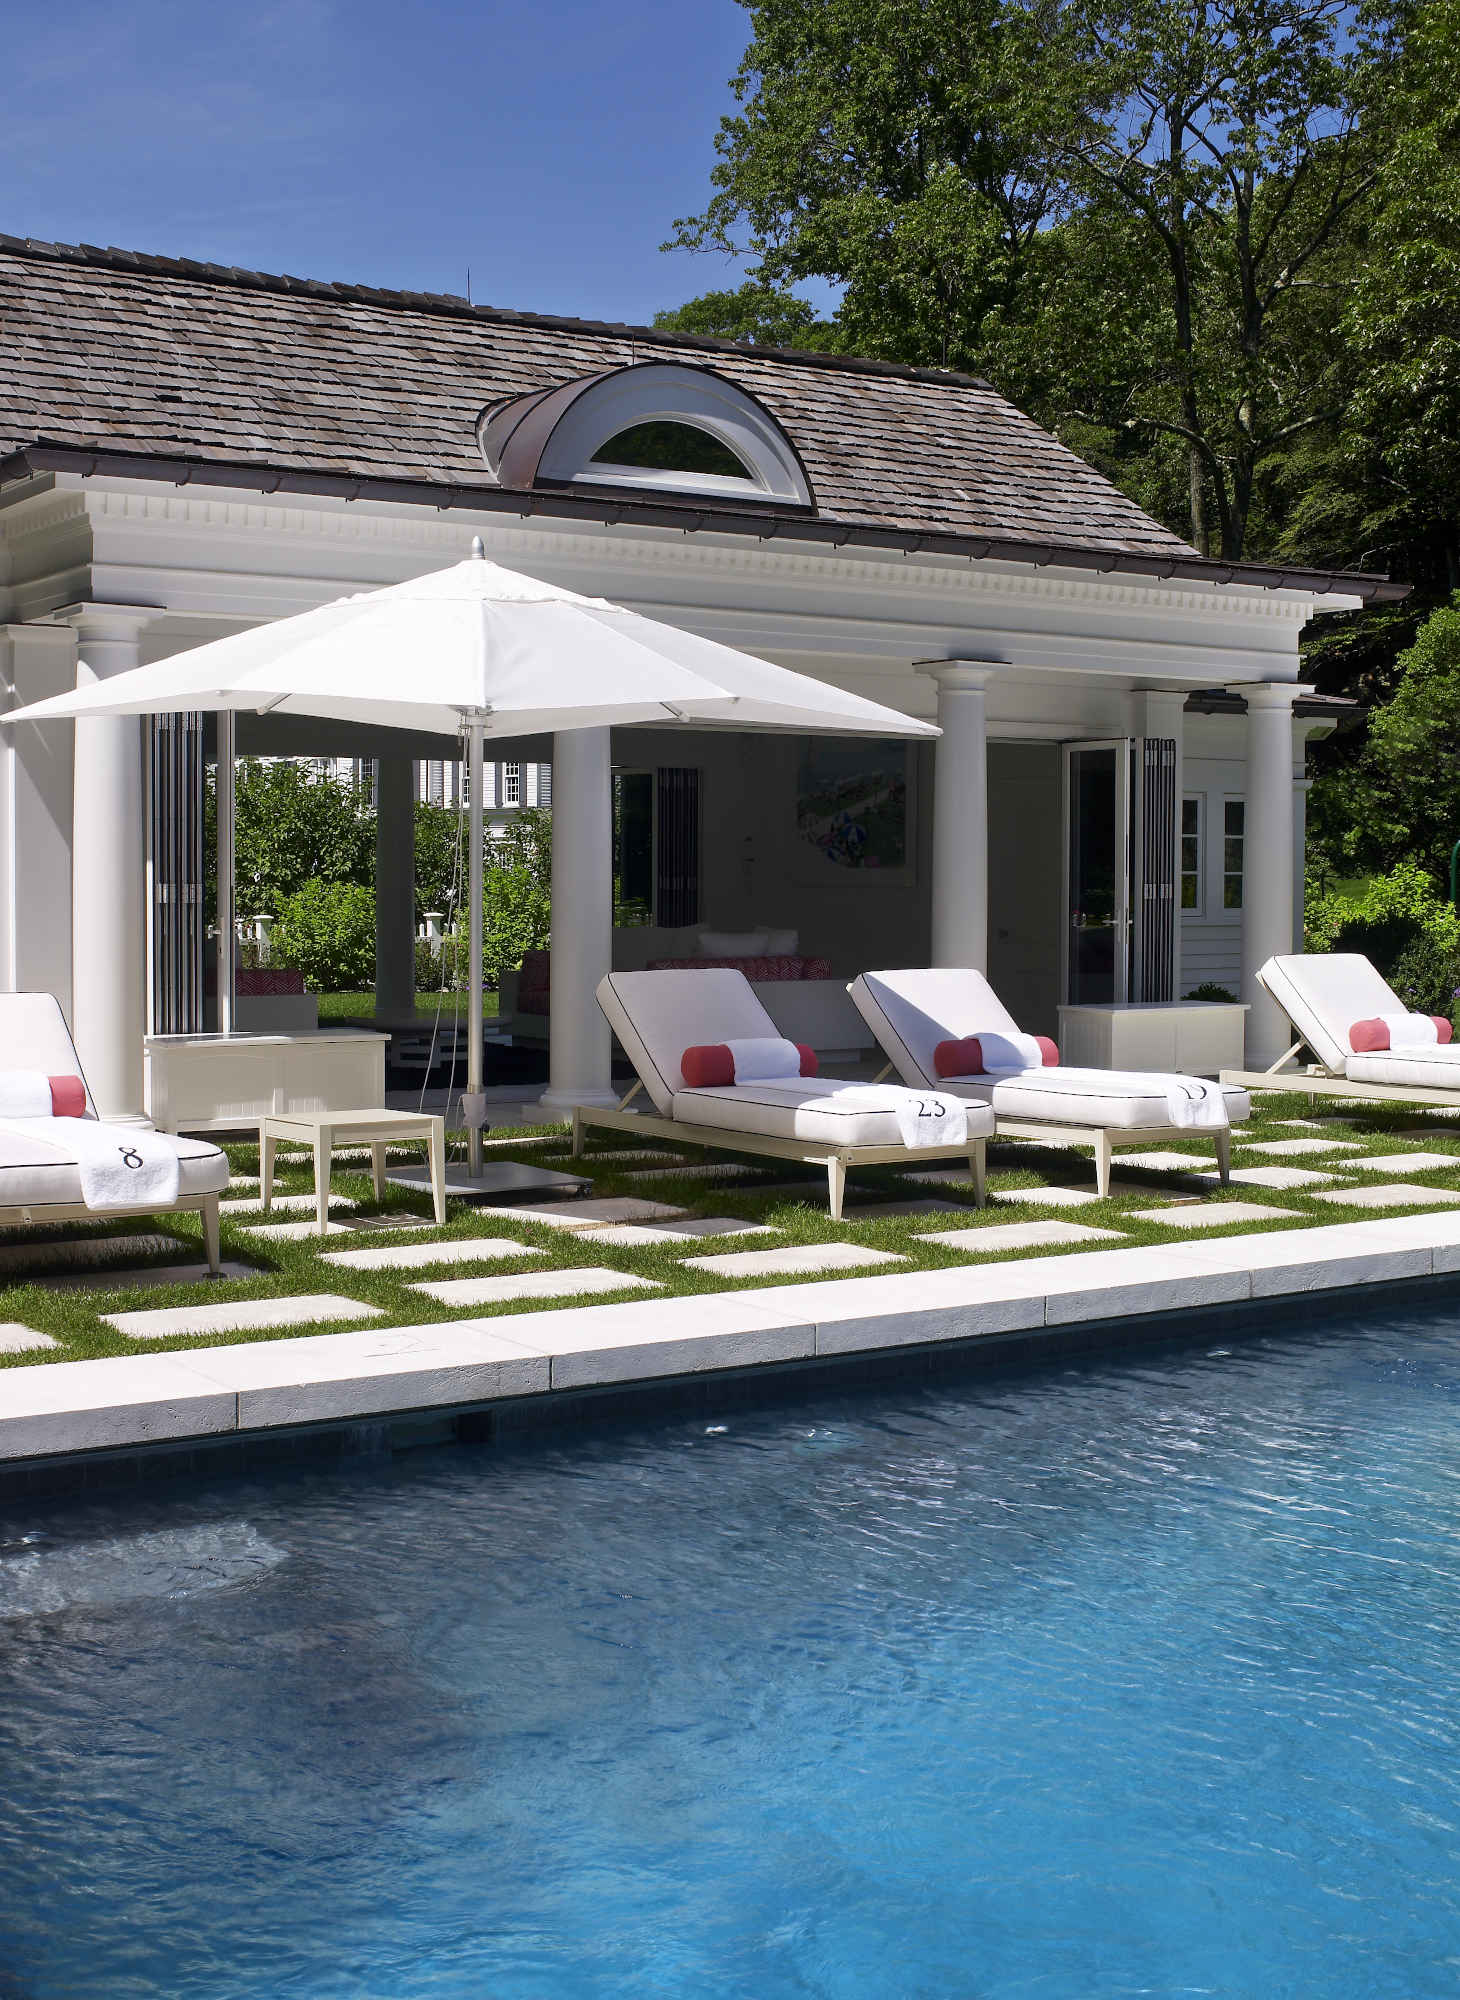 Poolhouse_photo_3.jpg